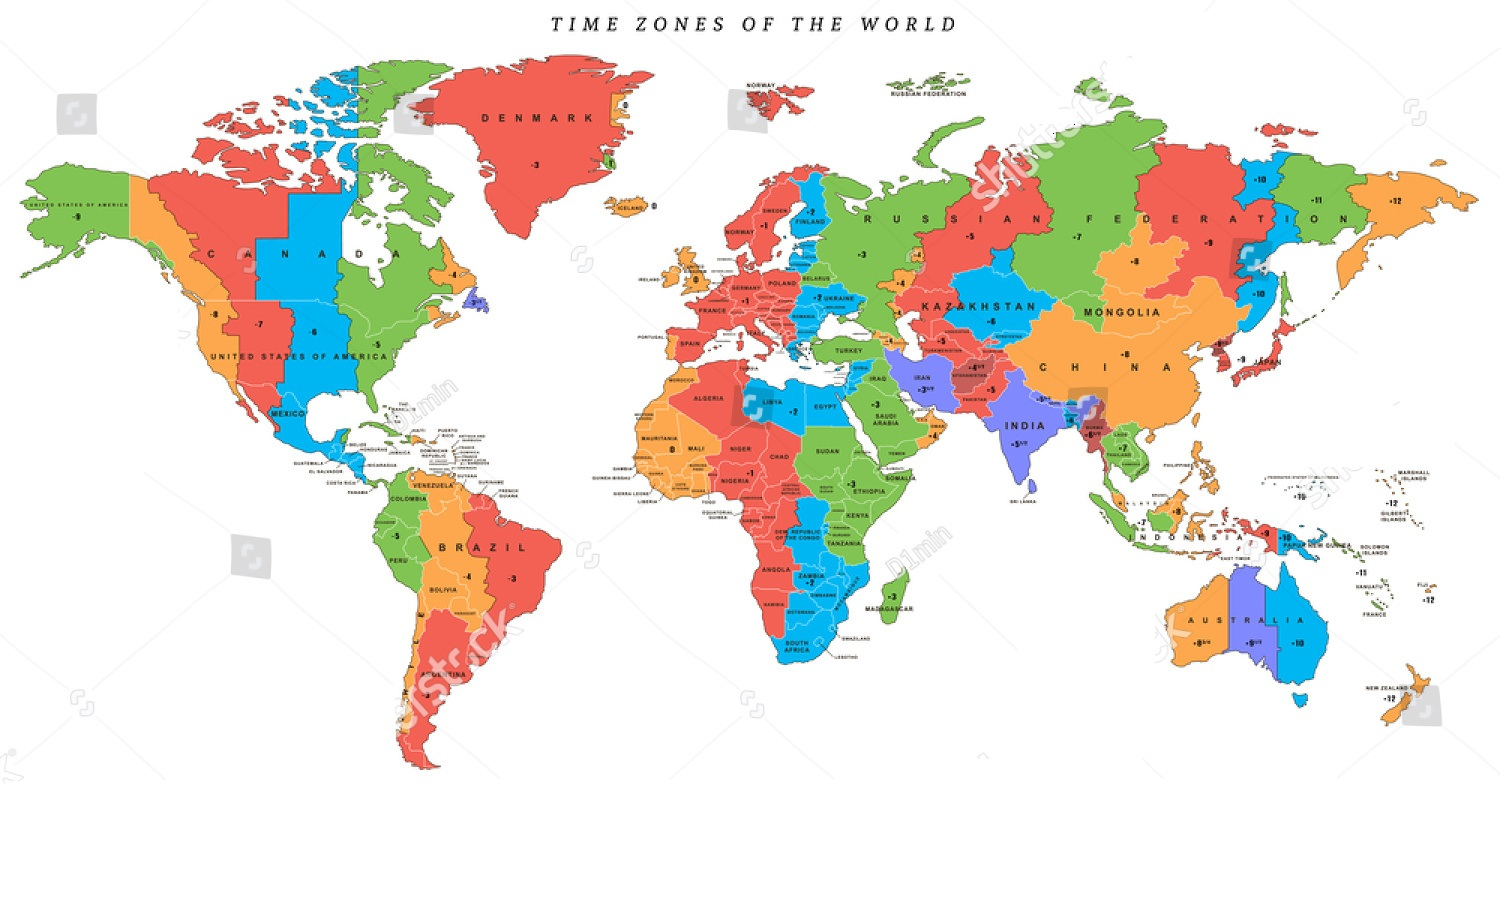 Free Large World Time Zone Map Printable